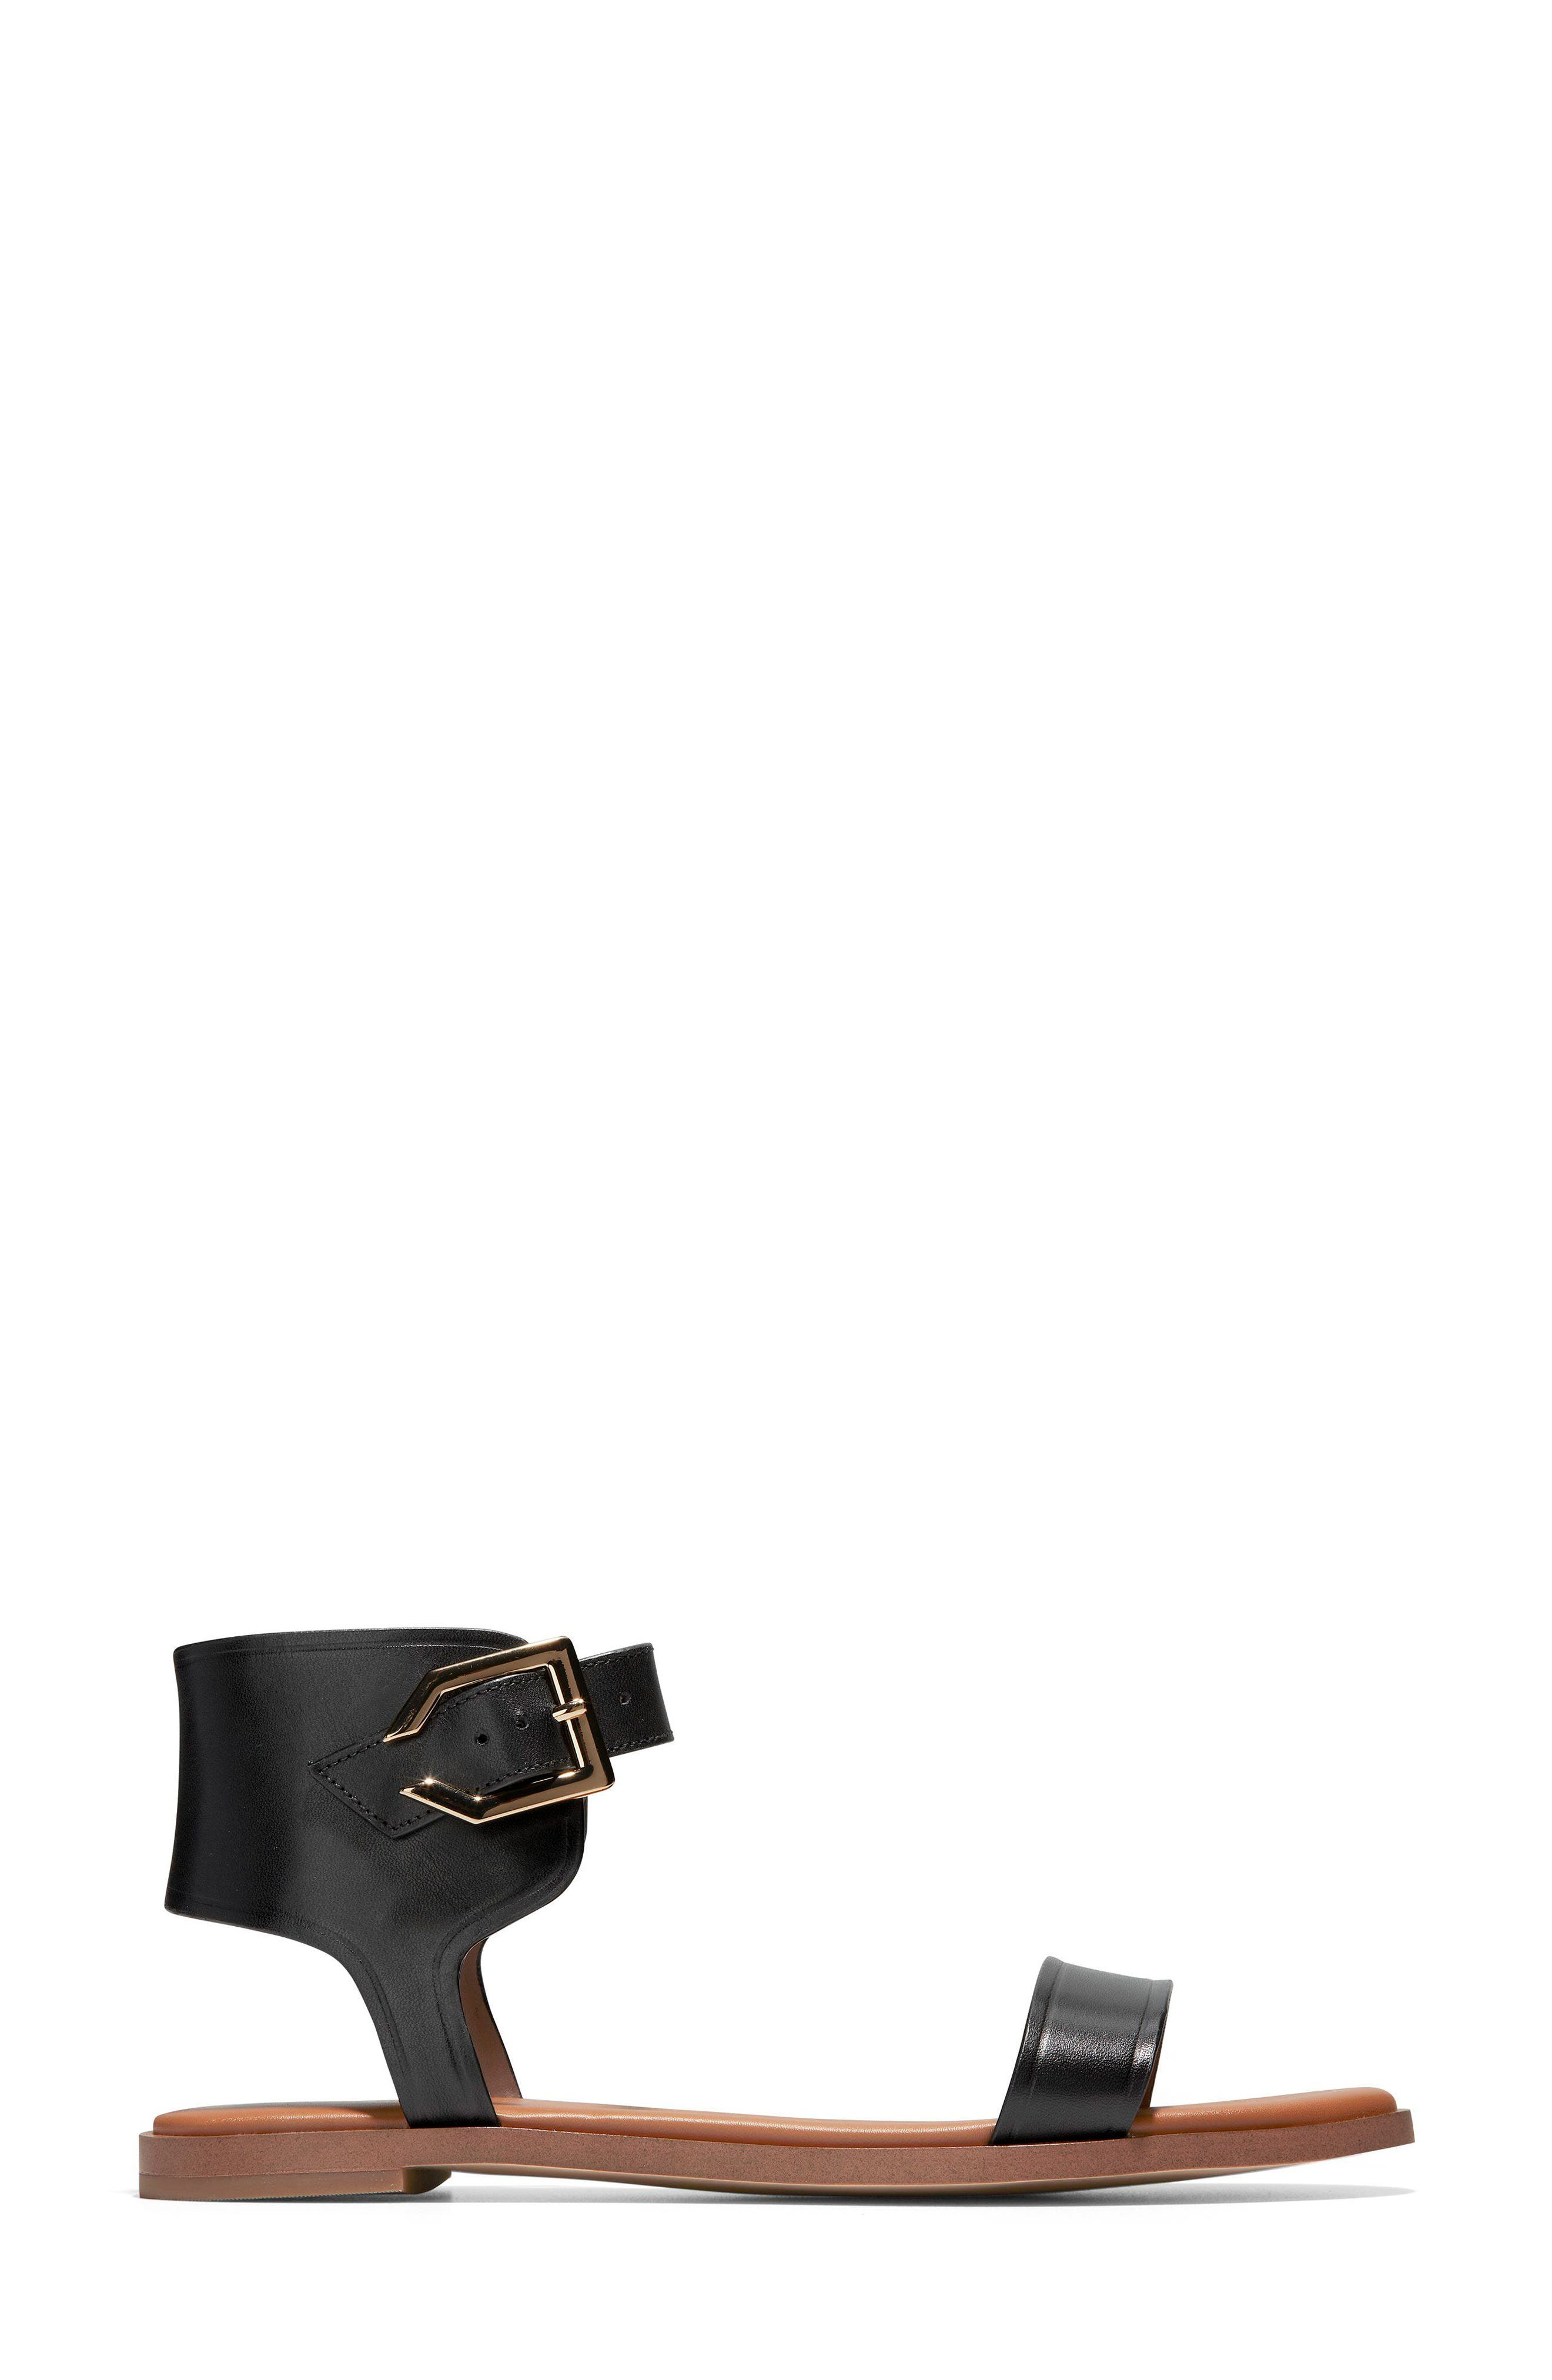 COLE HAAN,                             Anica Cuffed Sandal,                             Alternate thumbnail 3, color,                             001